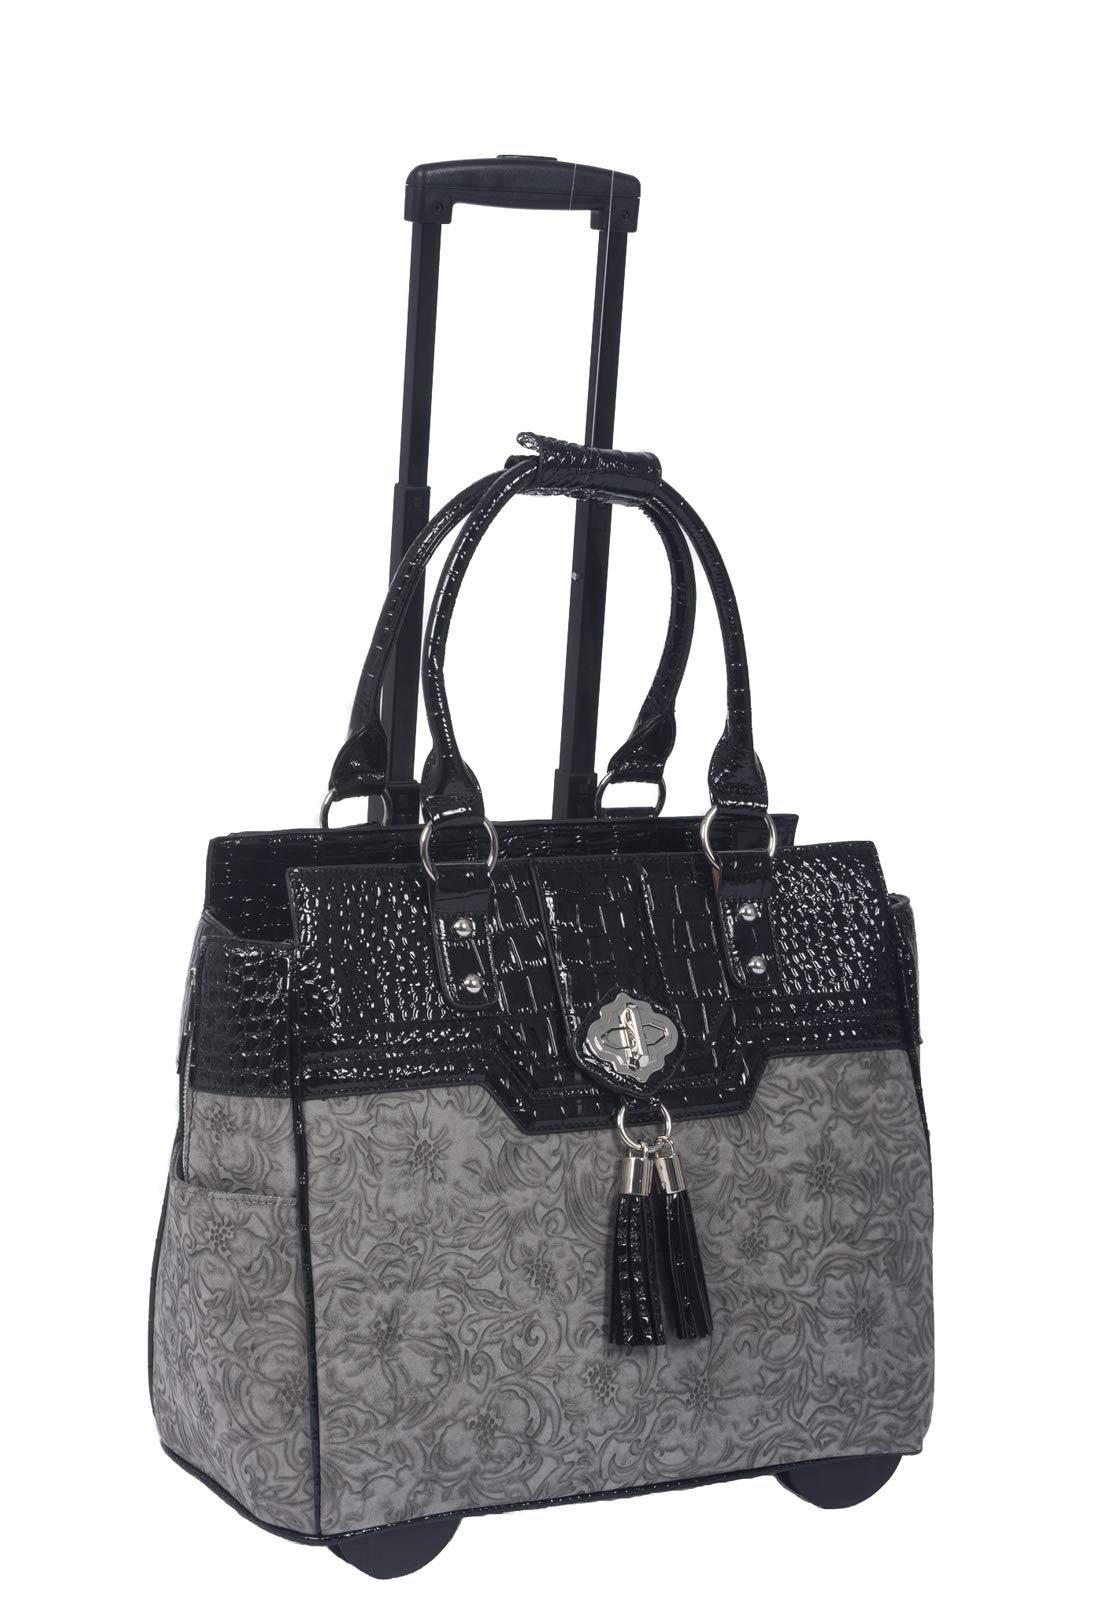 JKM and Company The Savannah Gray & Black Alligator Faux Leather Compatible with Computer iPad, Laptop Tablet Rolling Tote Bag Briefcase Carryall Bag